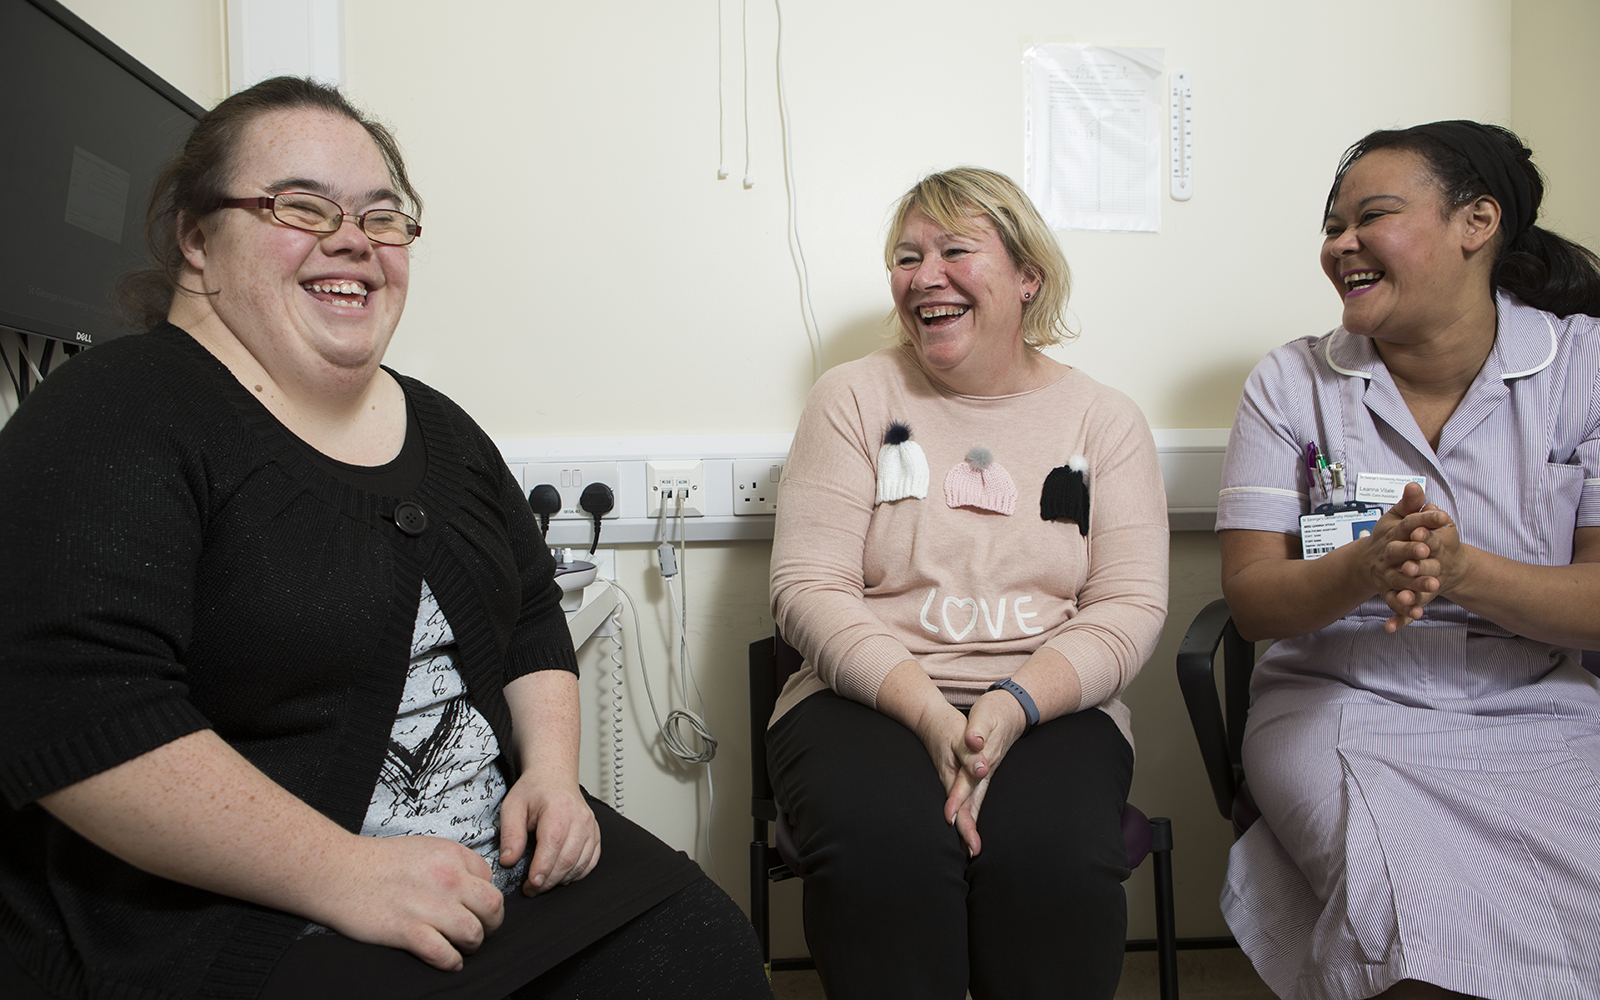 Three people sat together in doctors waiting room, smiling and laughing togther.